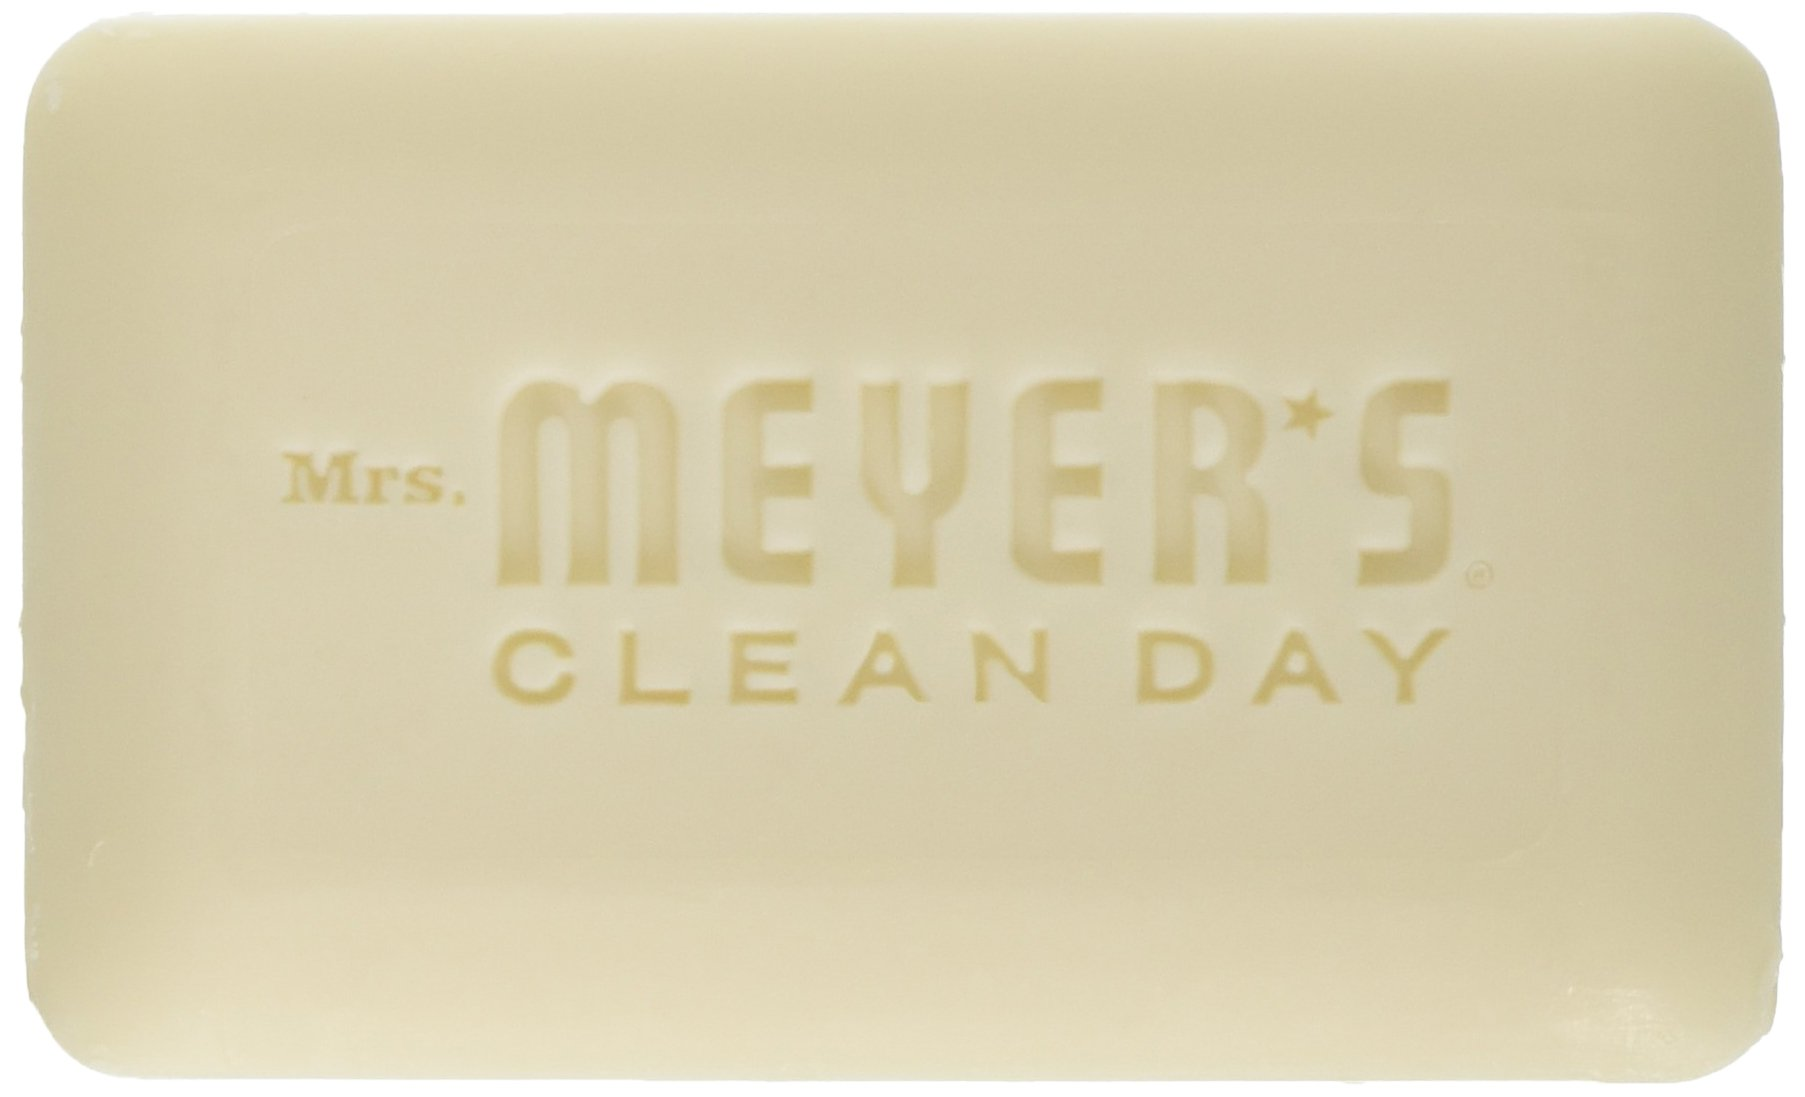 Mrs Meyers Bar Soap Hard 5.3oz Lavender Scent, 12 Count by Mrs. Meyer's Clean Day (Image #5)